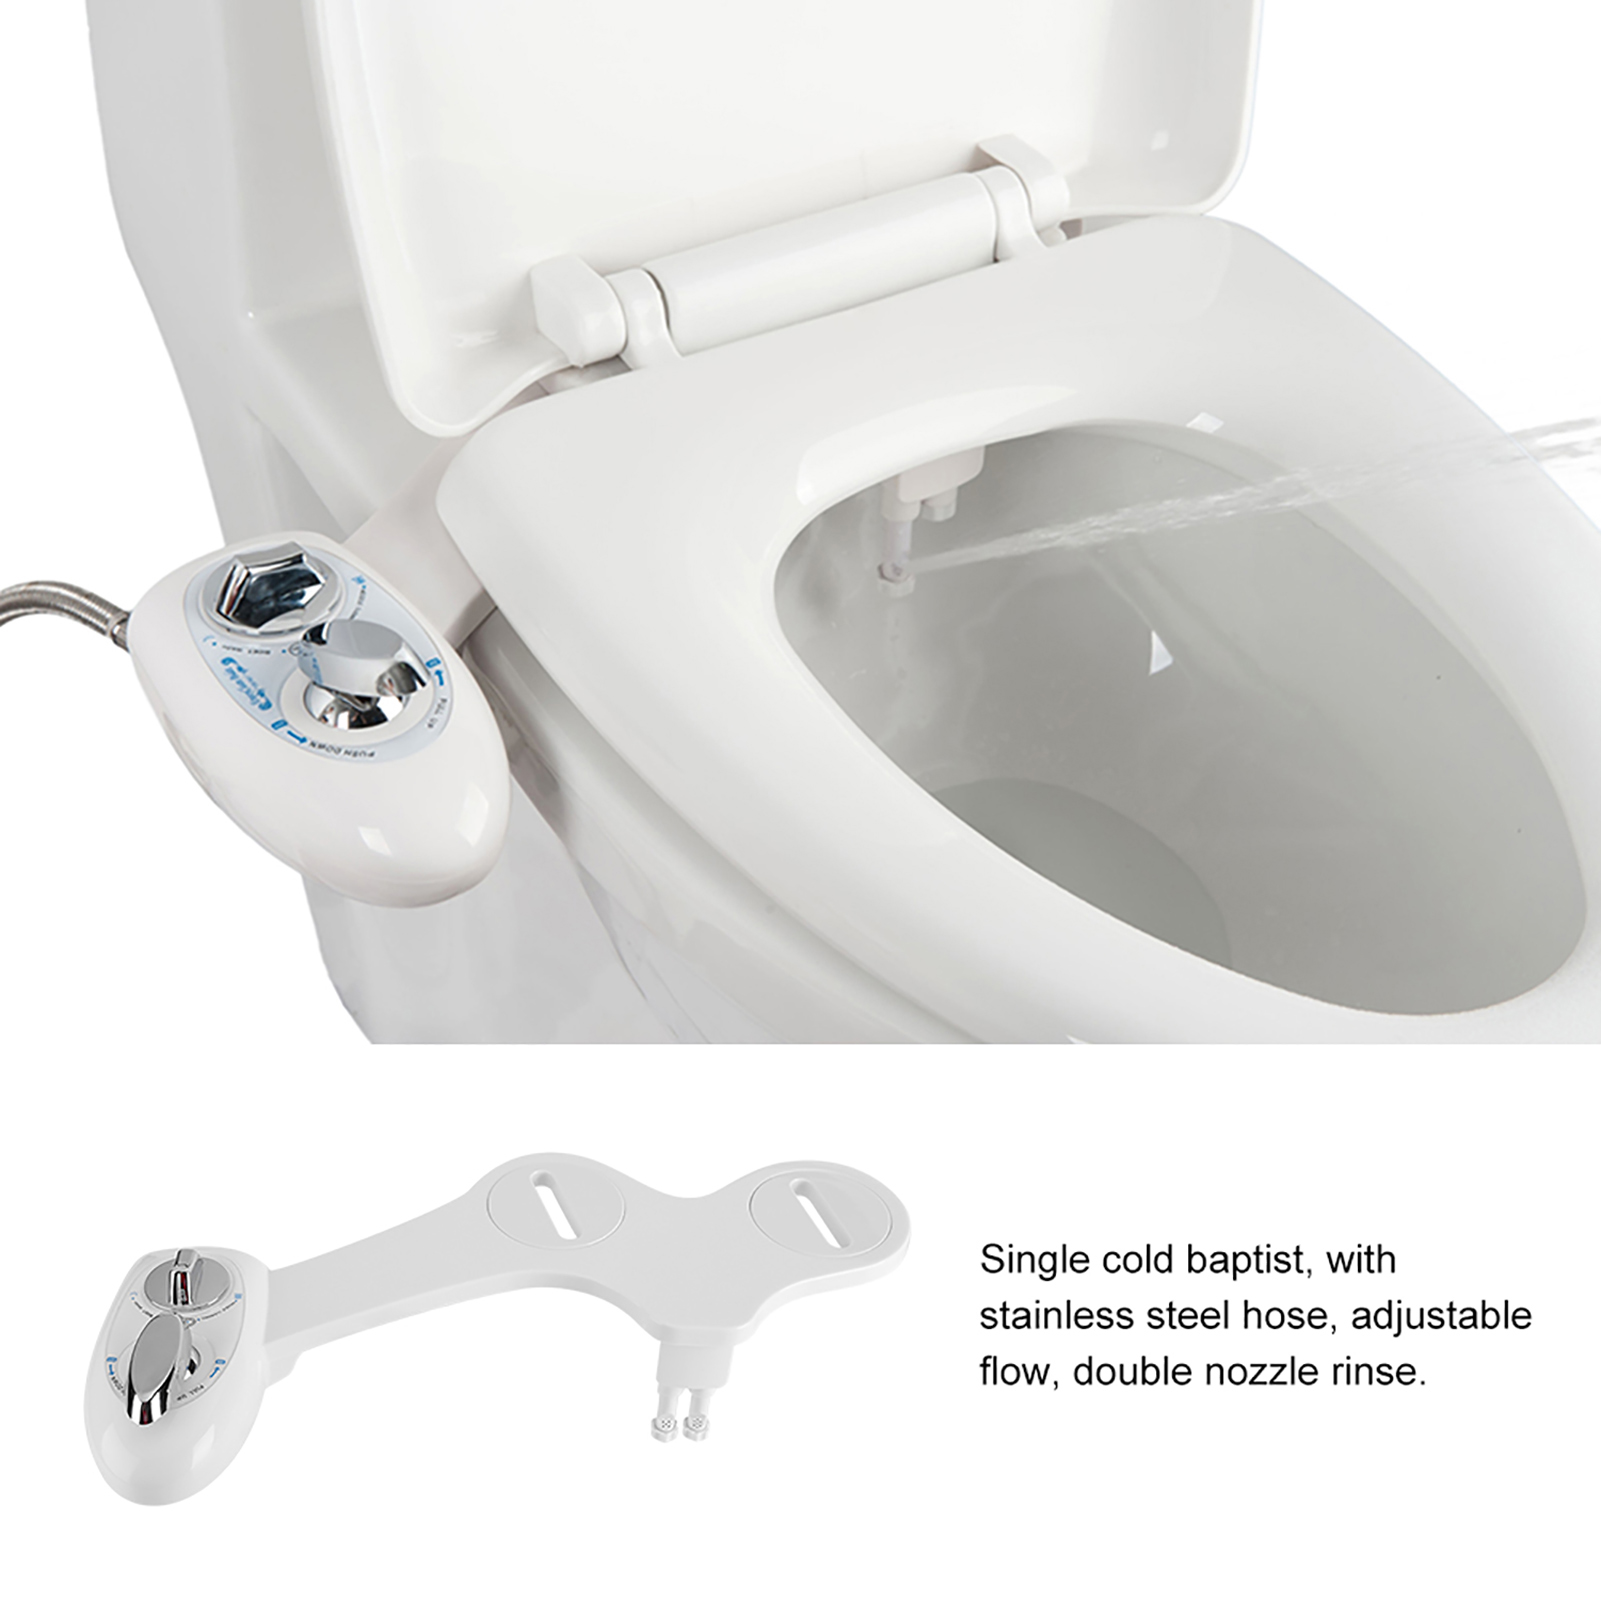 Toilet Bidet Seat Spray Hygeian Water Clean Unisex